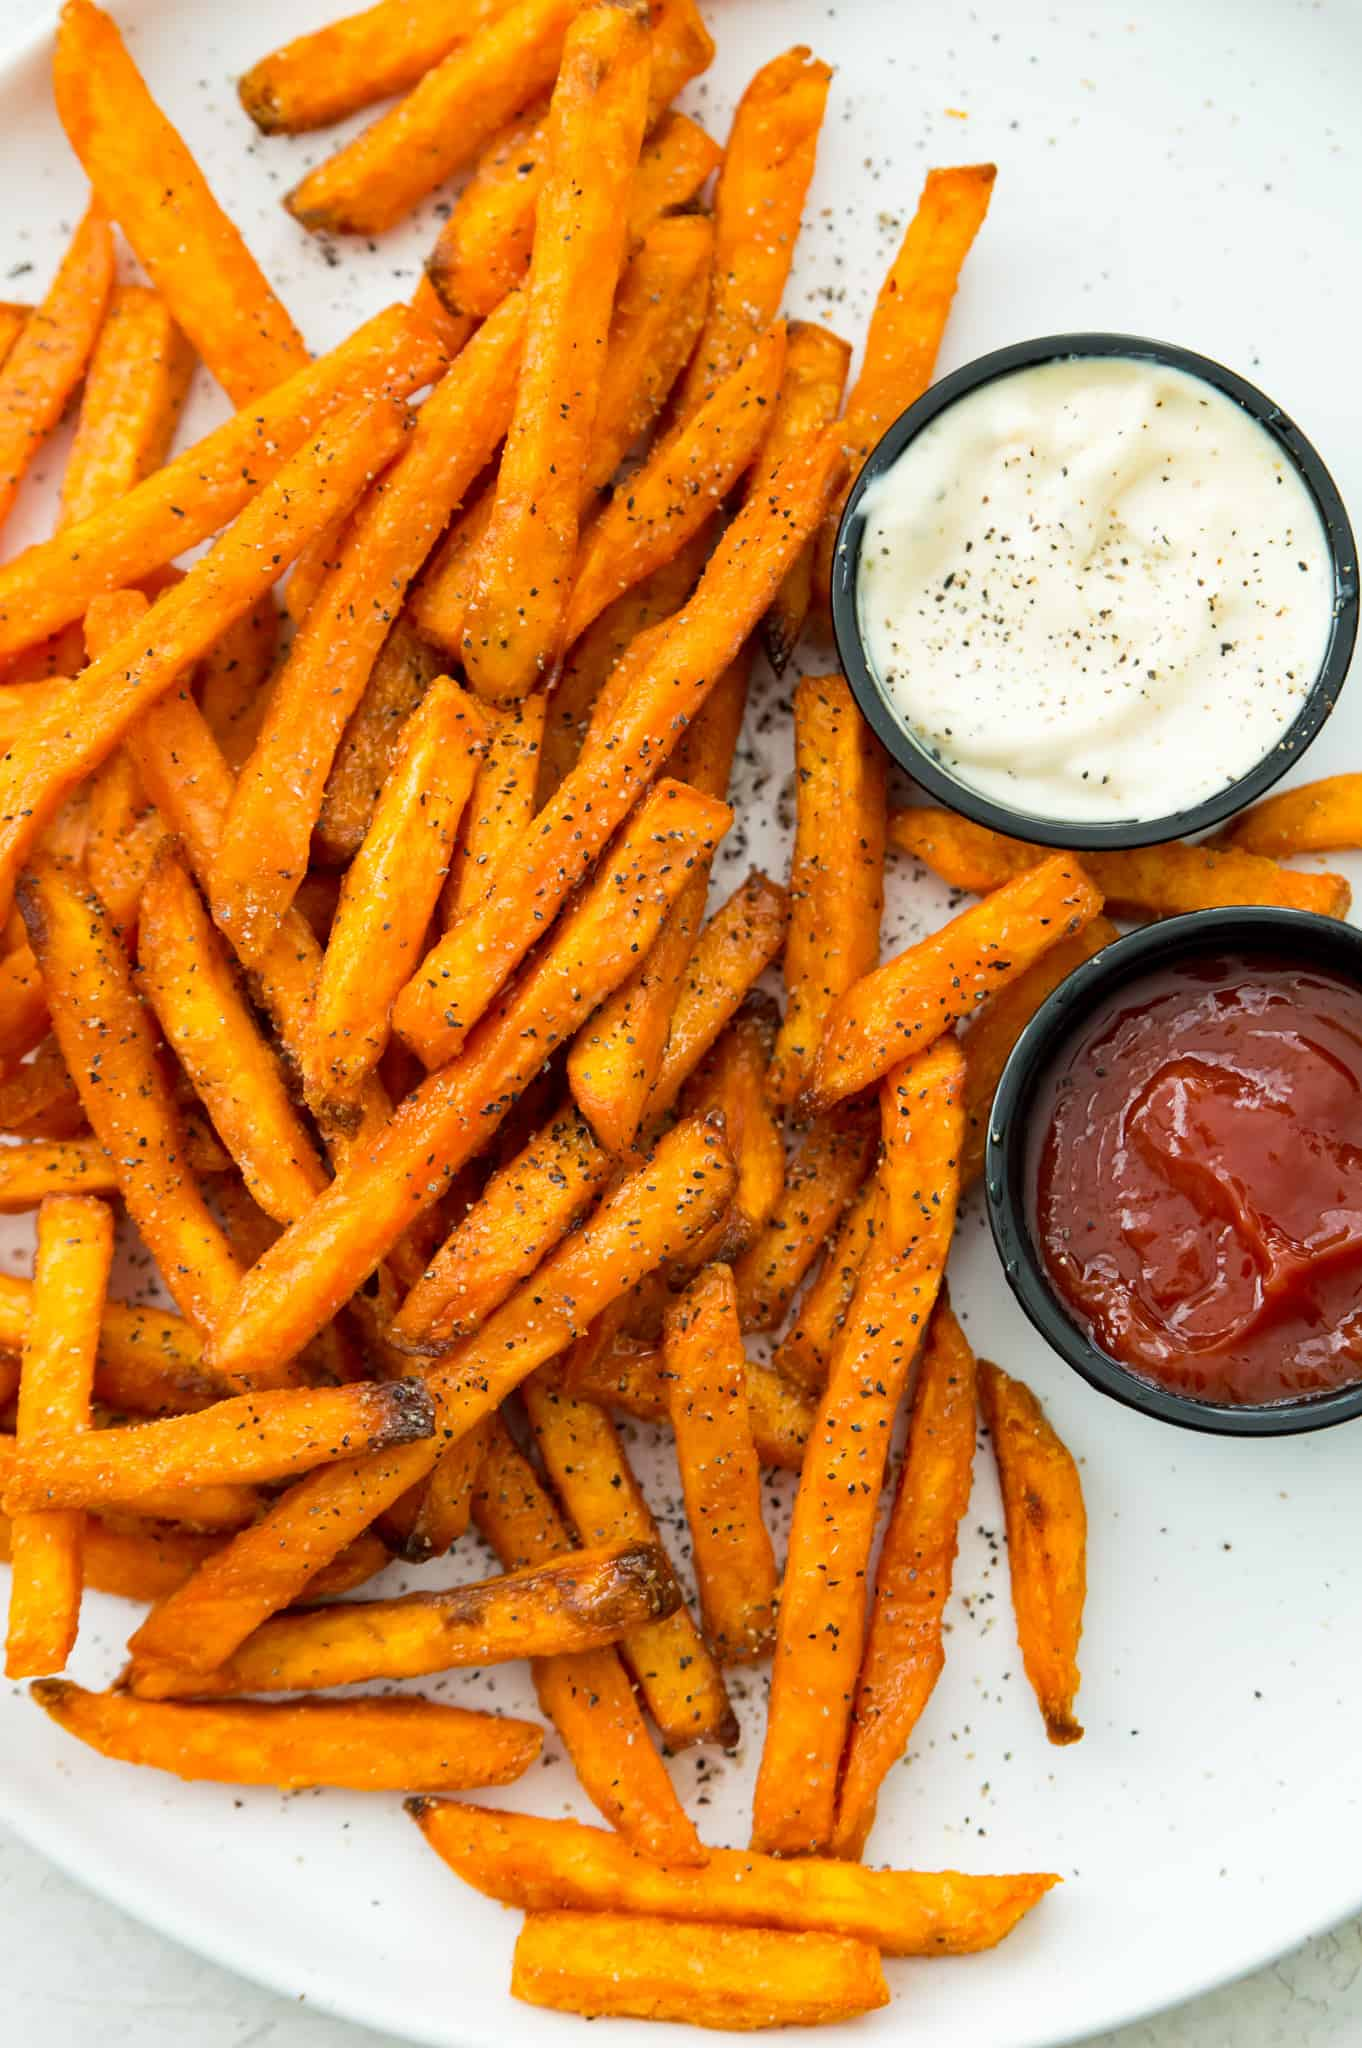 A plate of cooked sweet potato fries with ketchup and aioli on the side